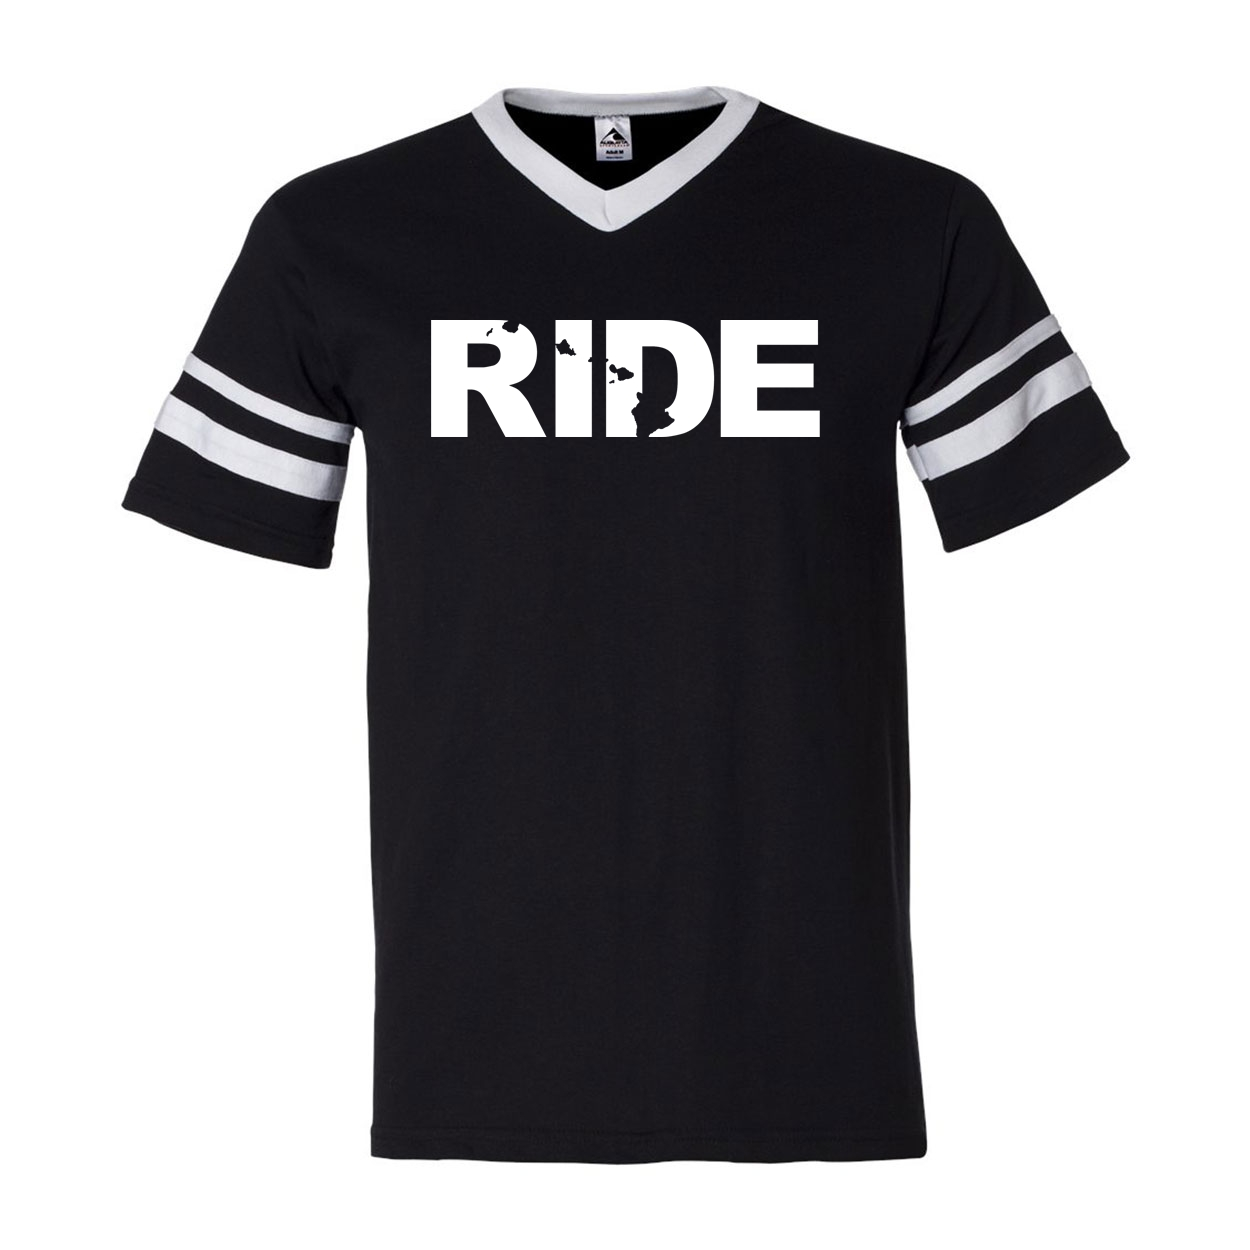 Ride Hawaii Classic Premium Striped Jersey T-Shirt Black/White (White Logo)